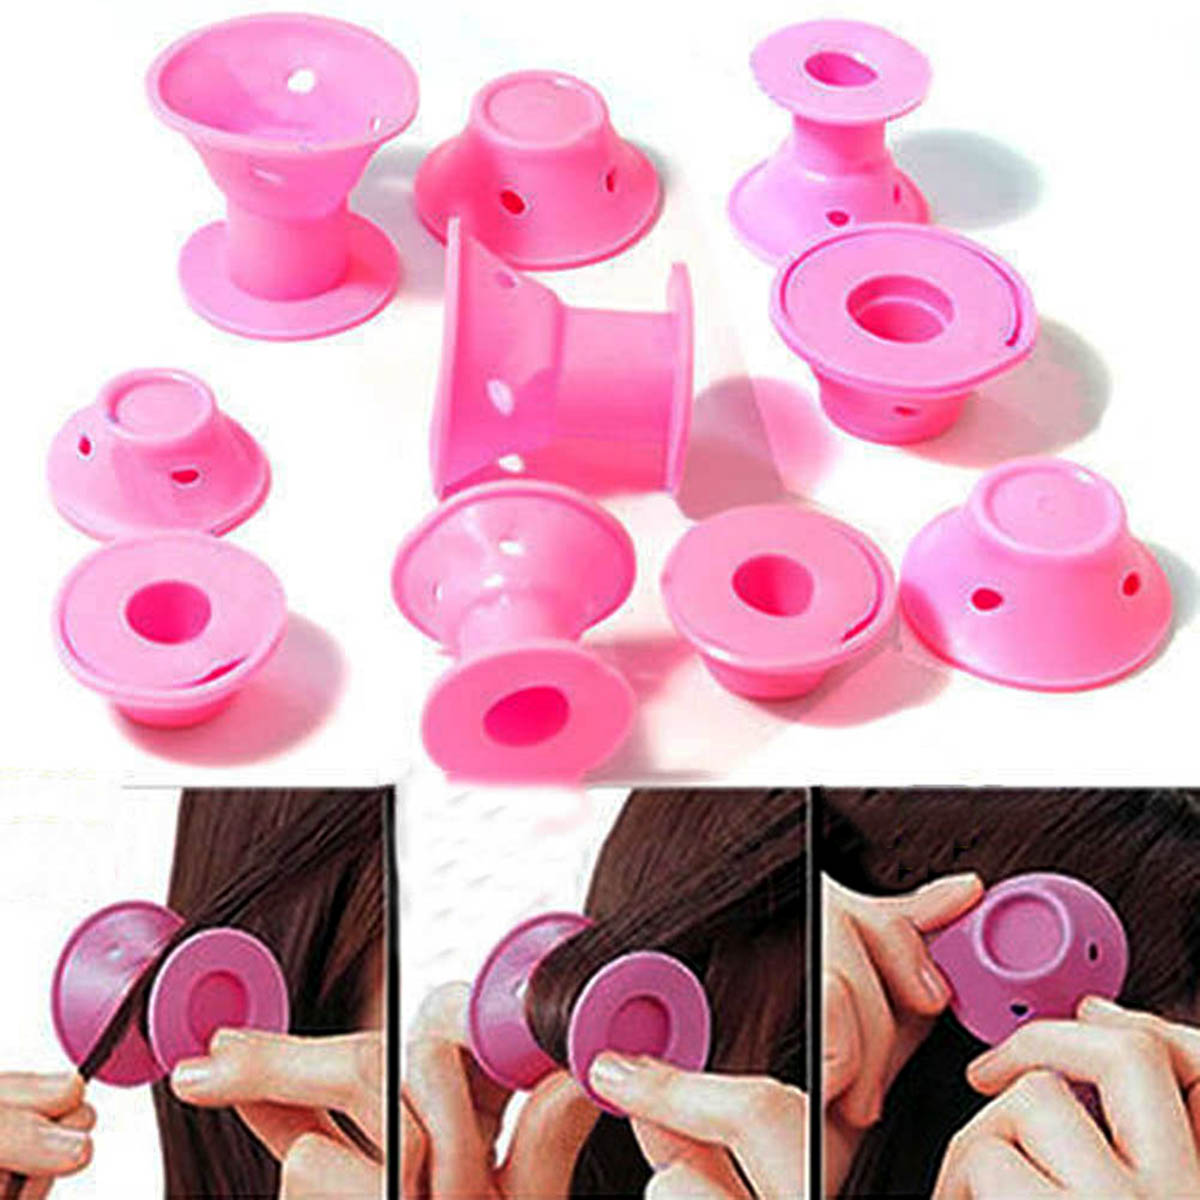 10pcs/set Soft Rubber Magic Hair Care Rollers Silicone Hair Curler No Heat Hair Styling Tool